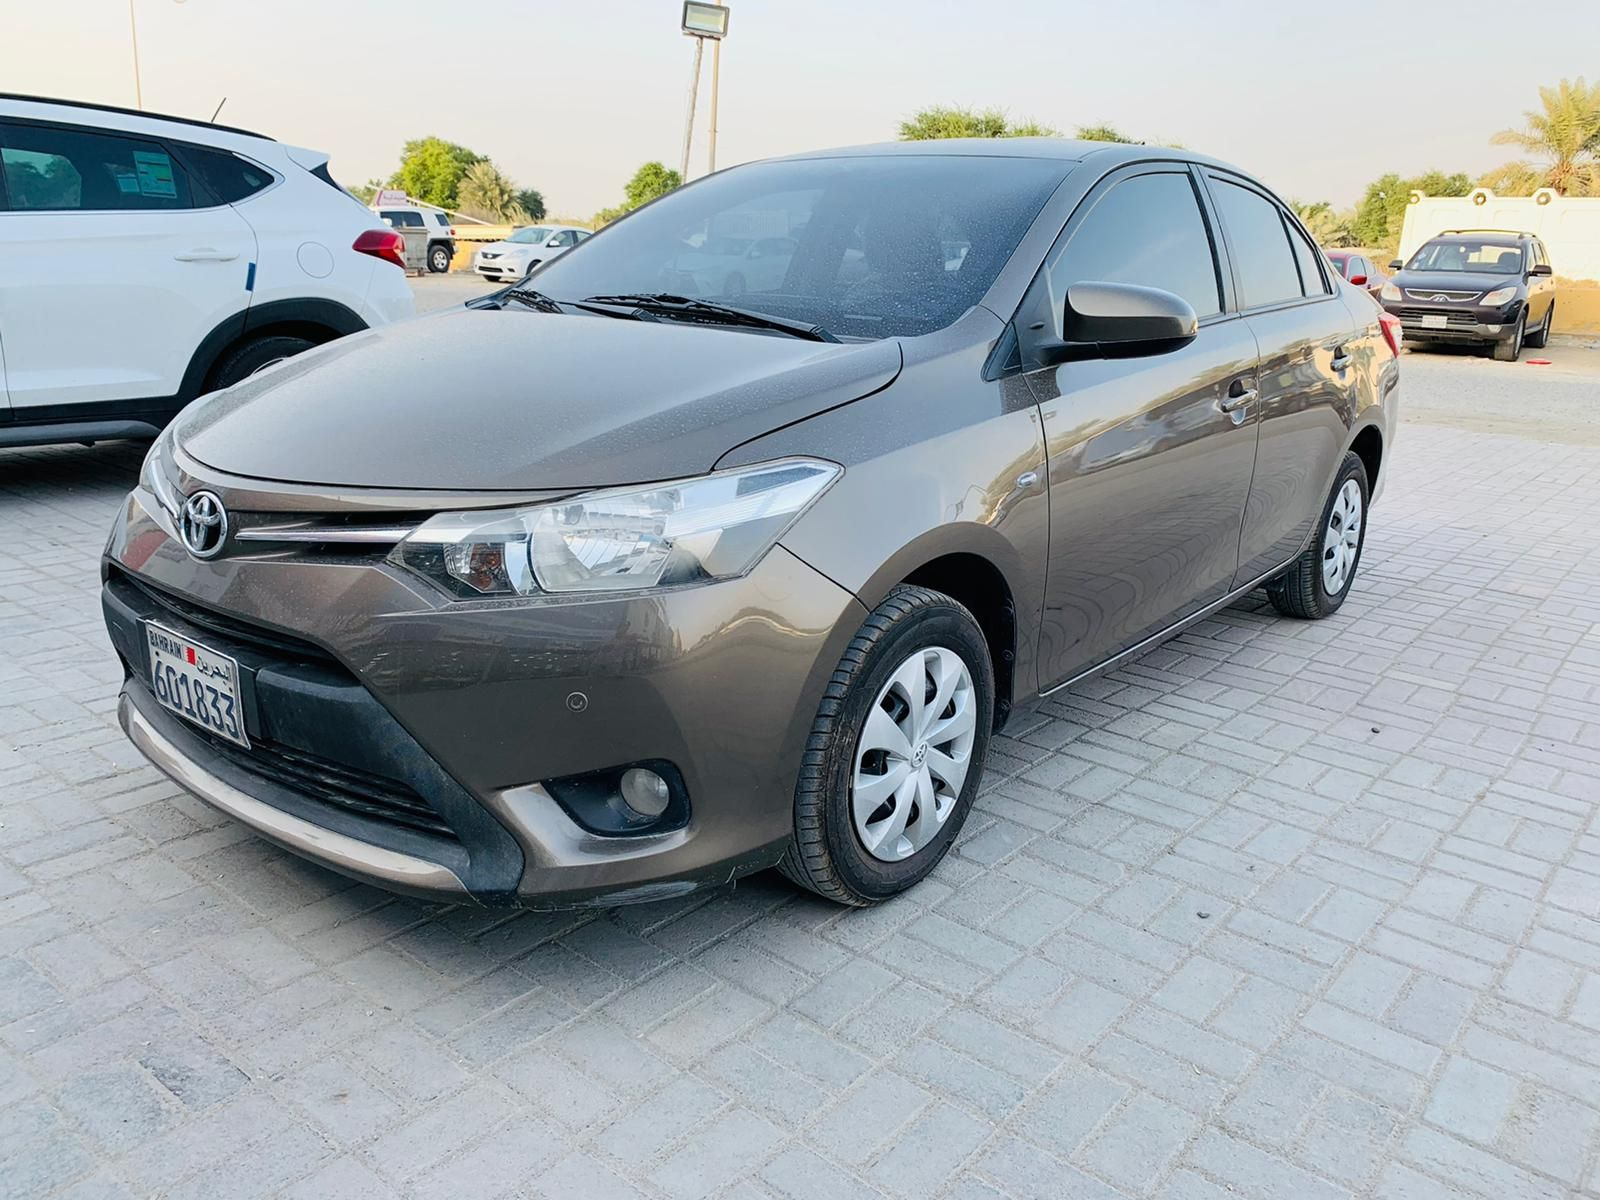 TOYOTA YARIS 1.5 MODEL 2017 GOOD CONDITION